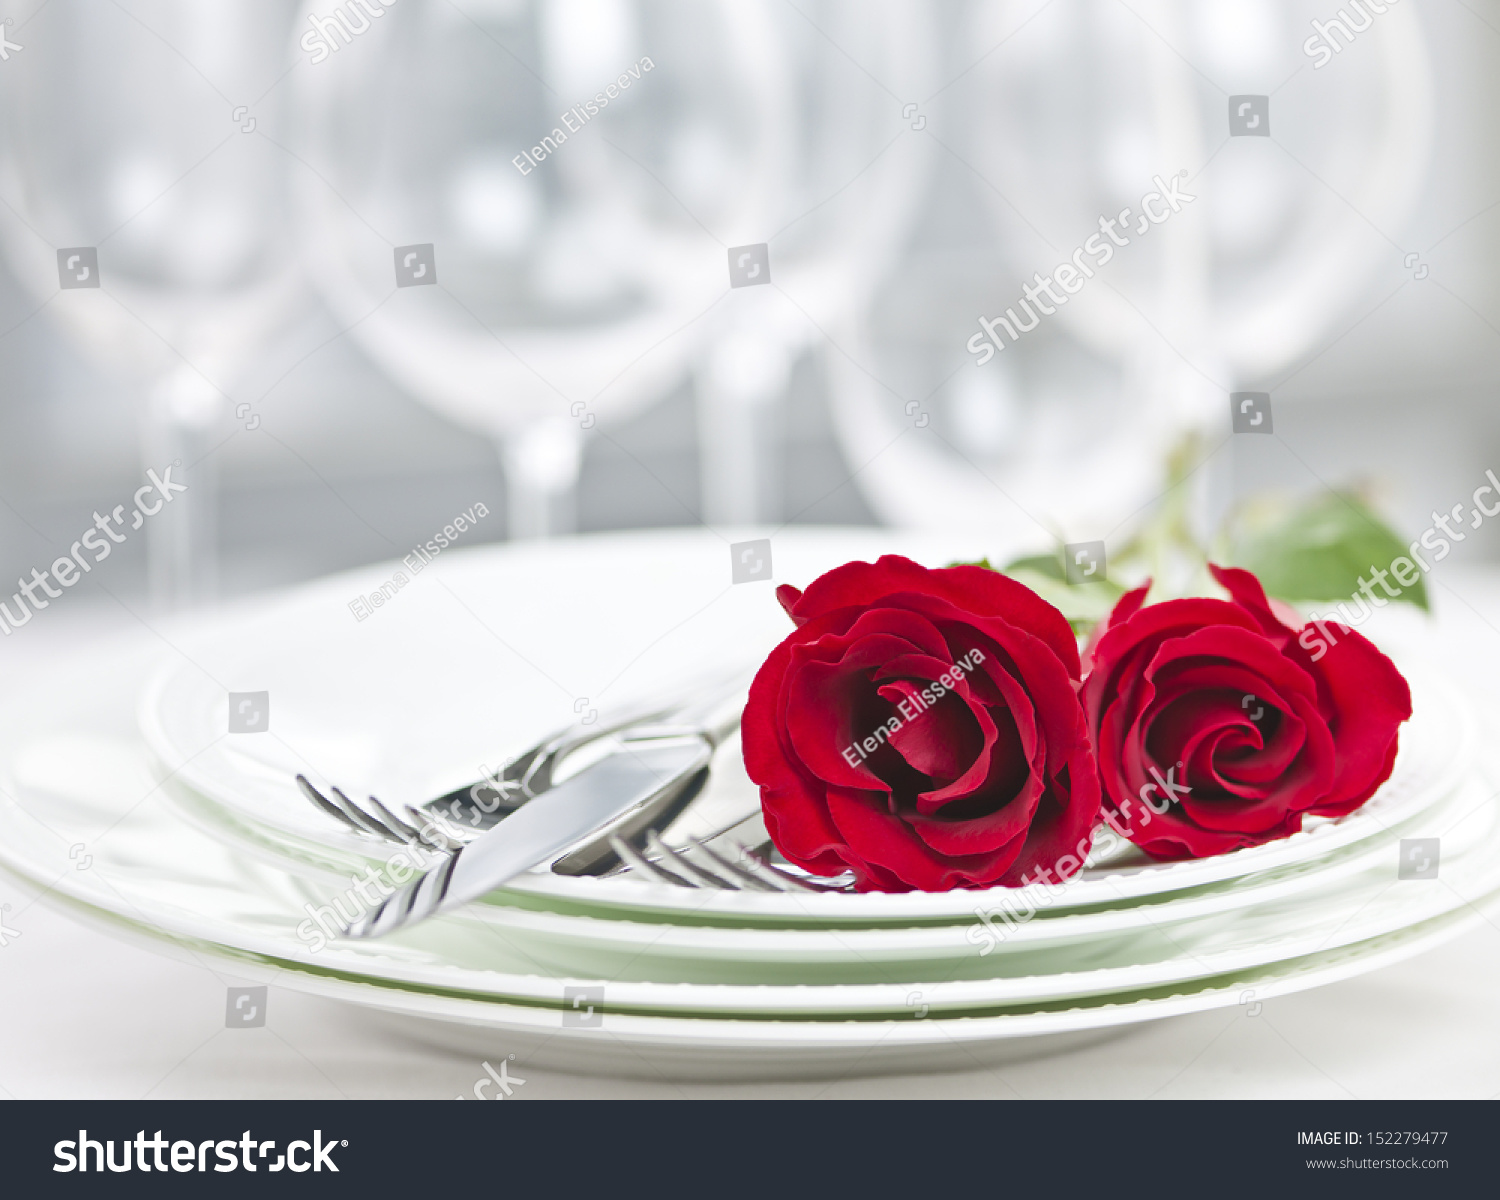 Restaurant table for two - Romantic Restaurant Table Setting For Two With Roses Plates And Cutlery